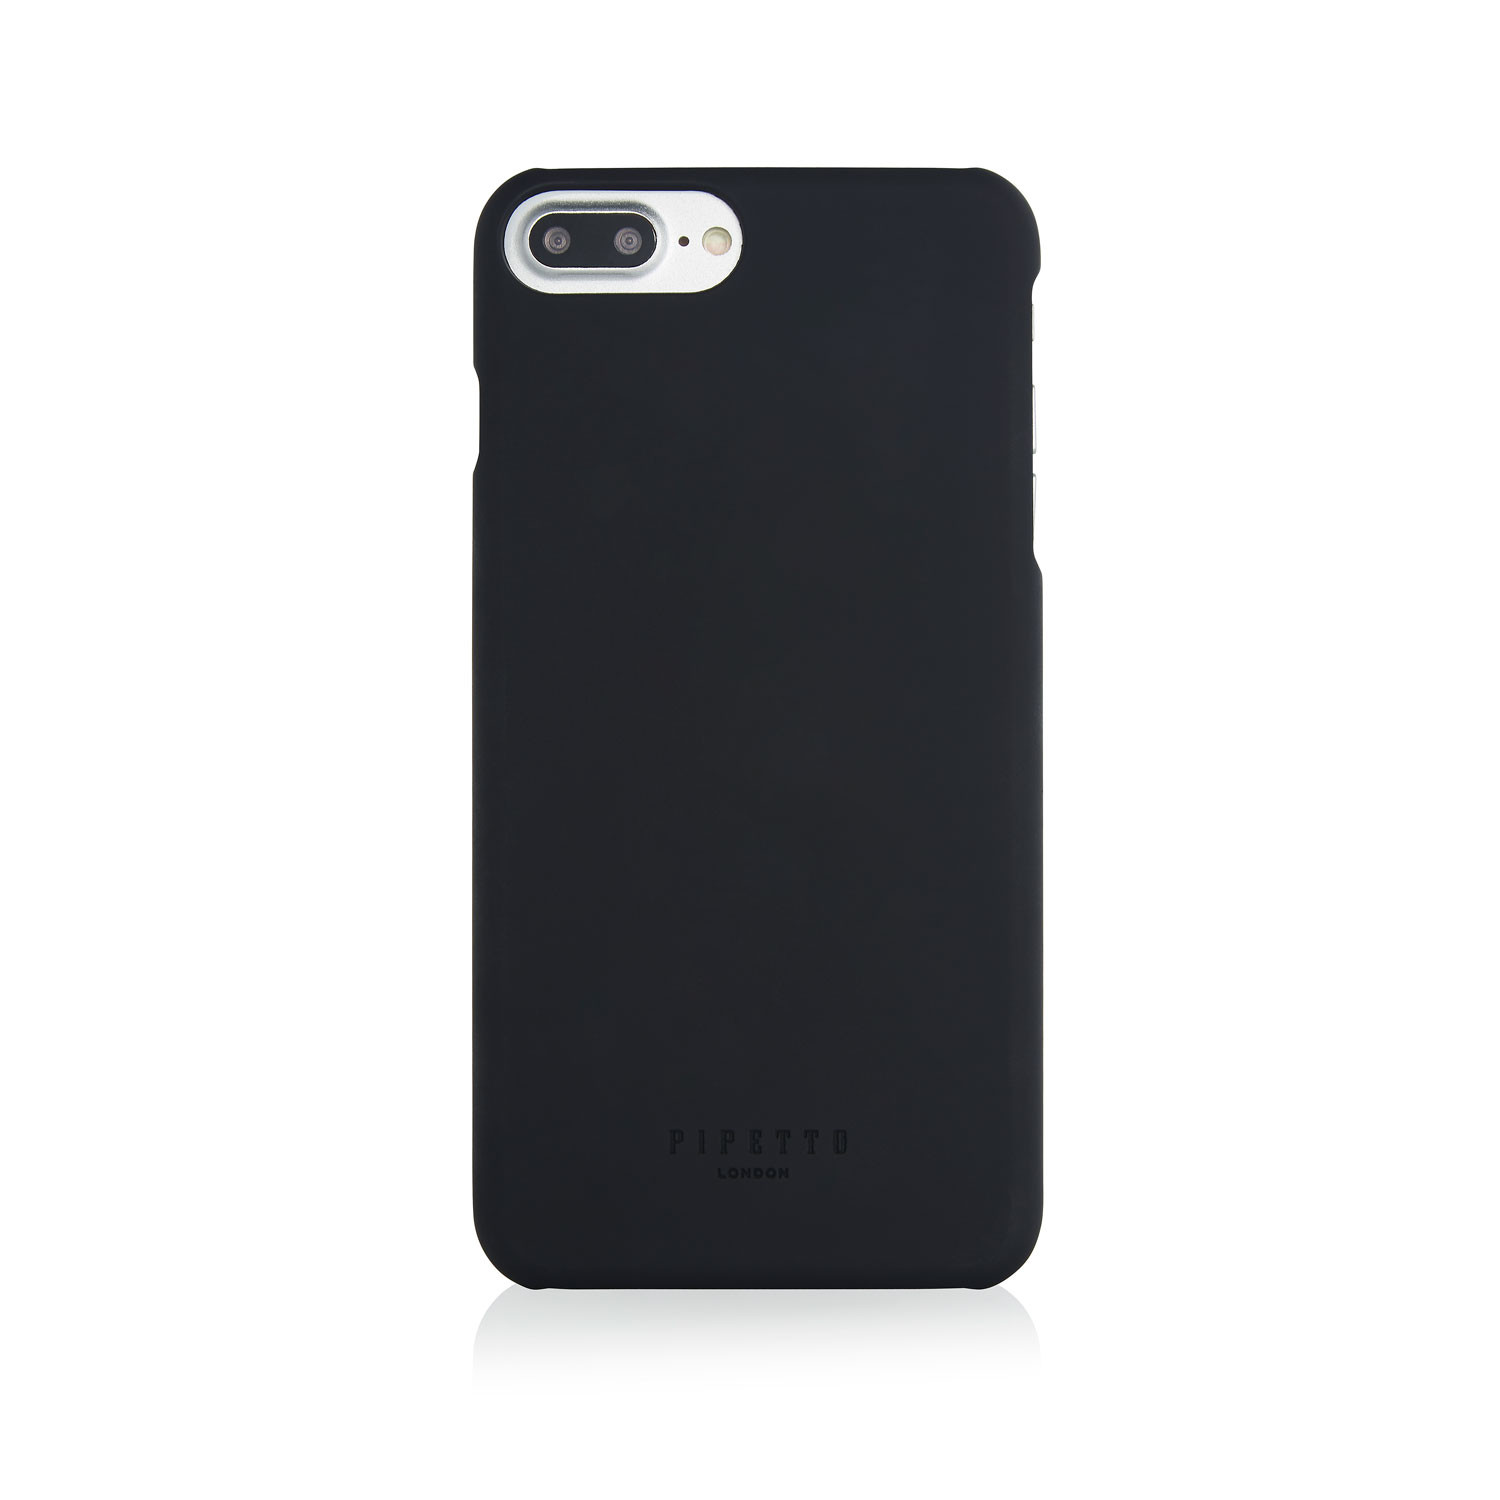 39ee92343f iPhone 7 Plus / iPhone 6 Plus / iPhone 6S Plus Grey Shell Snap Case ...